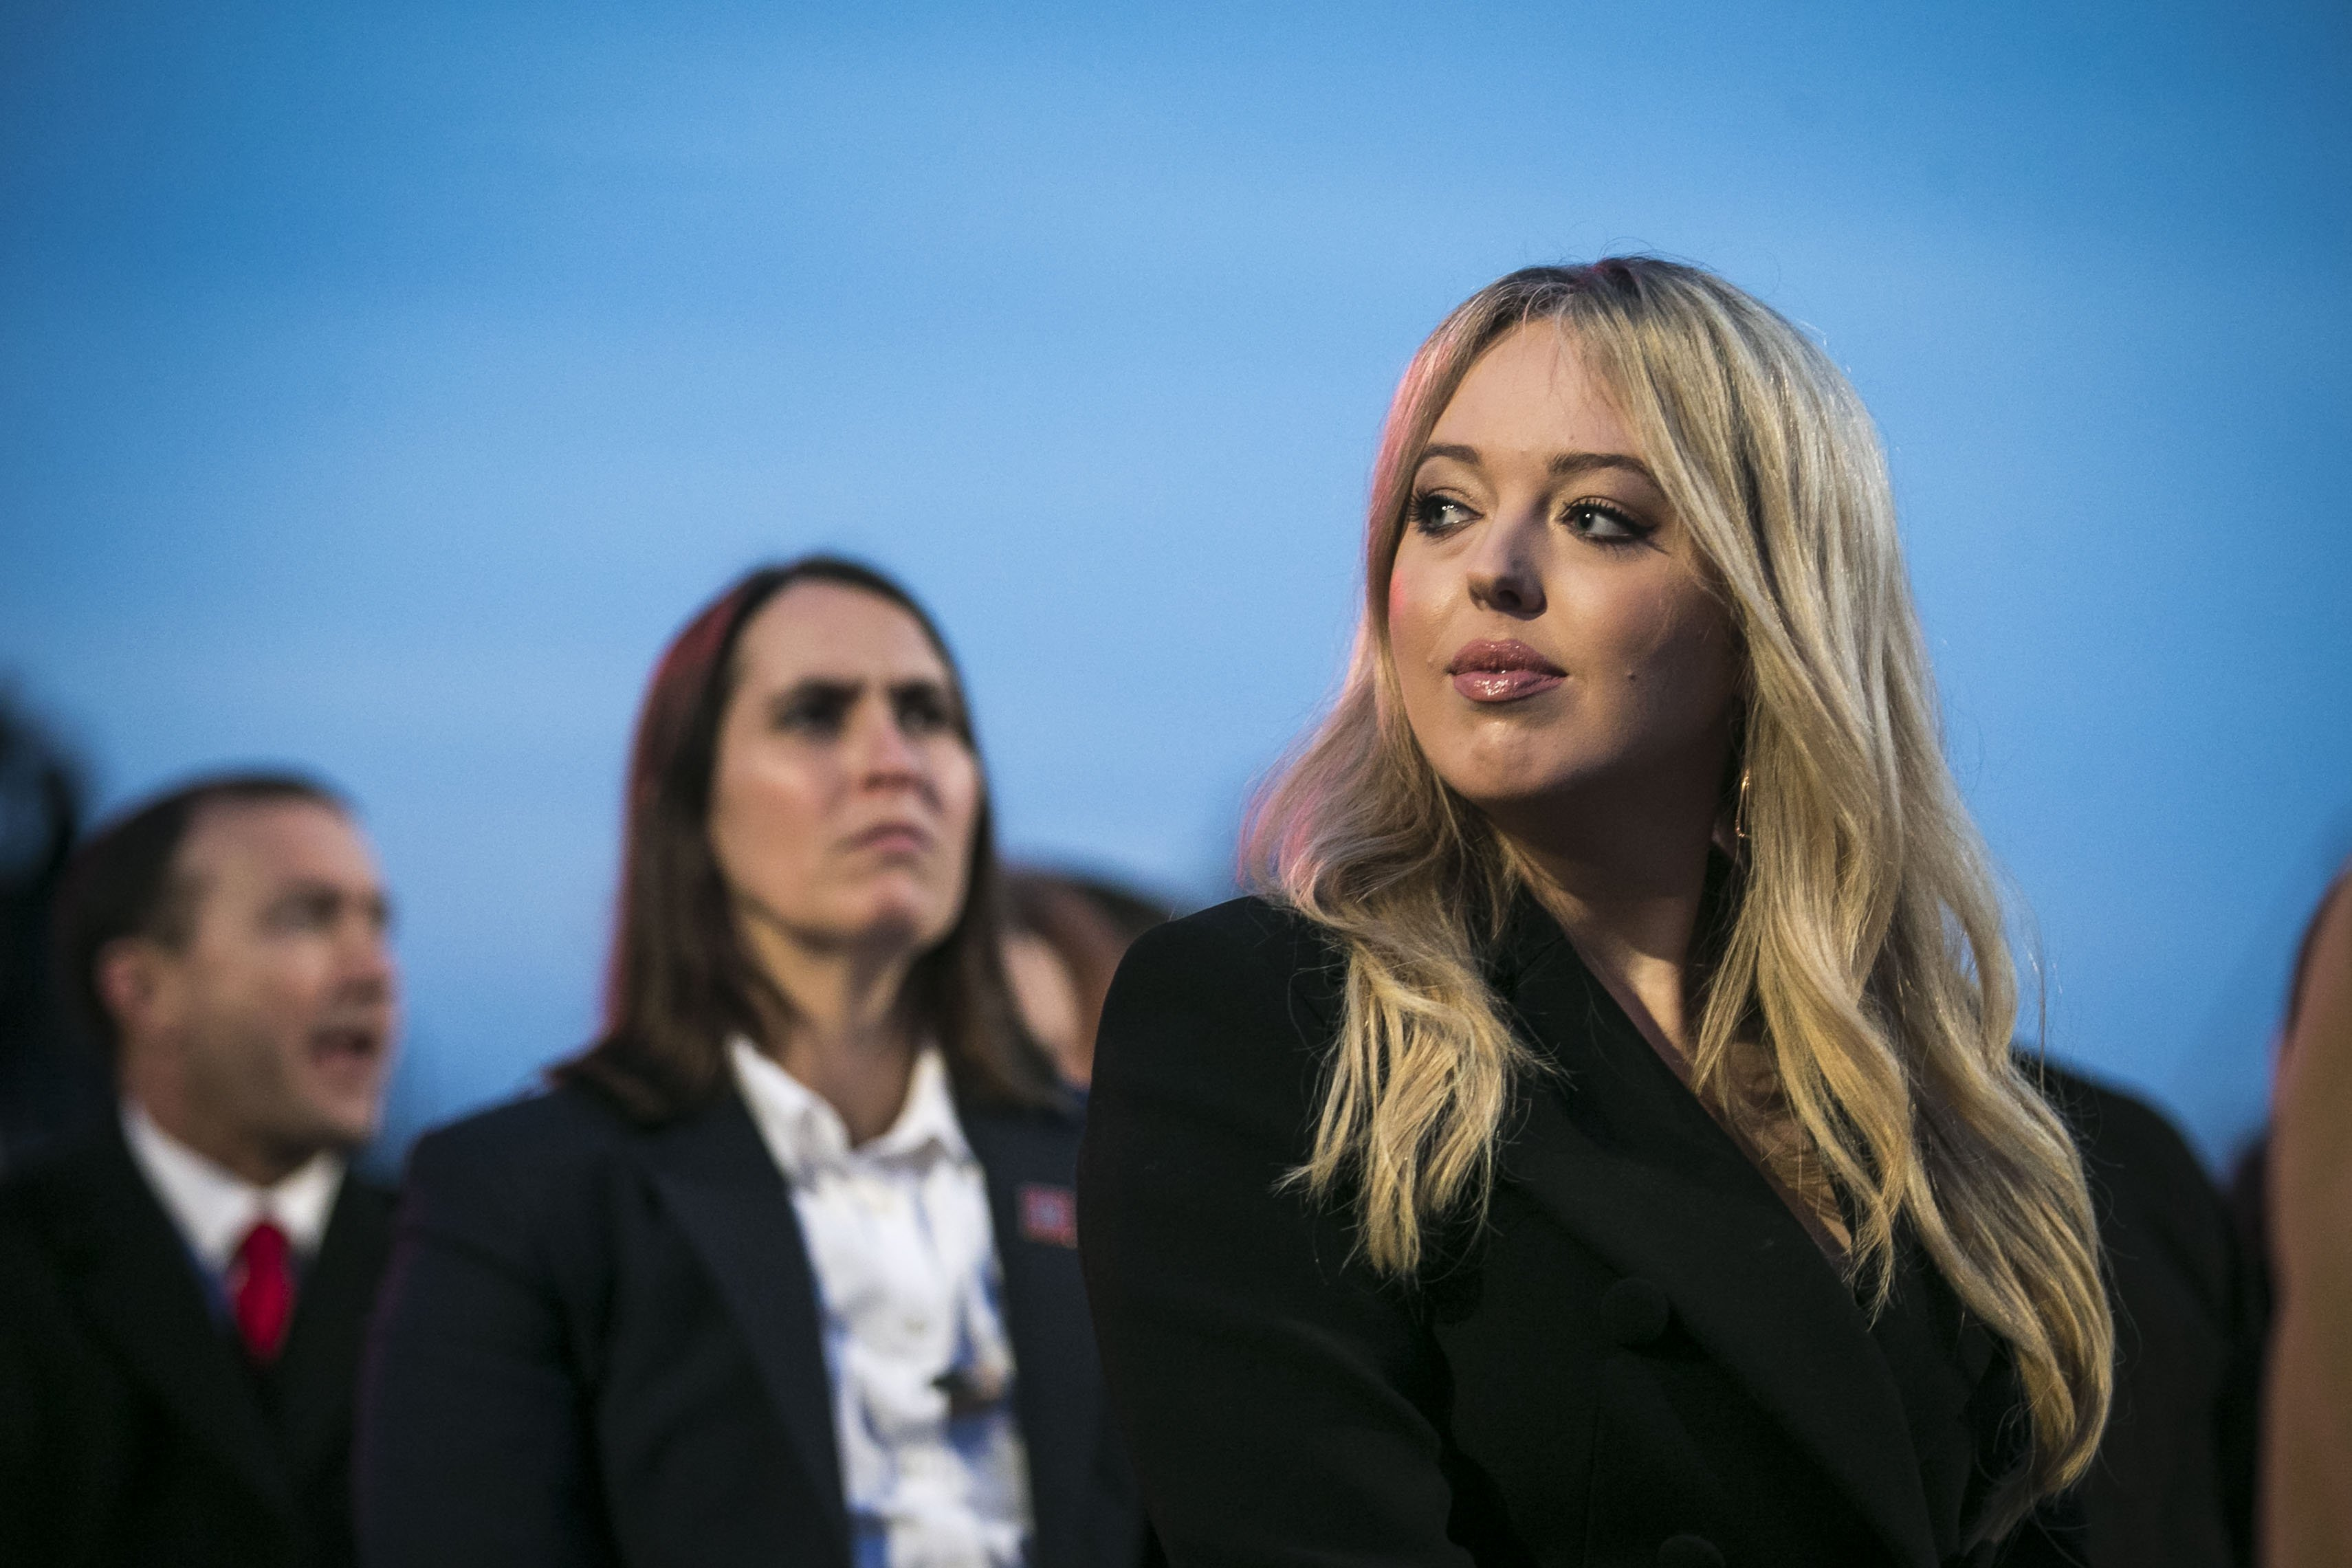 Tiffany Trump attends the 95th annual national Christmas tree lighting ceremony on November 30, 2017.  | Photo: Getty Images